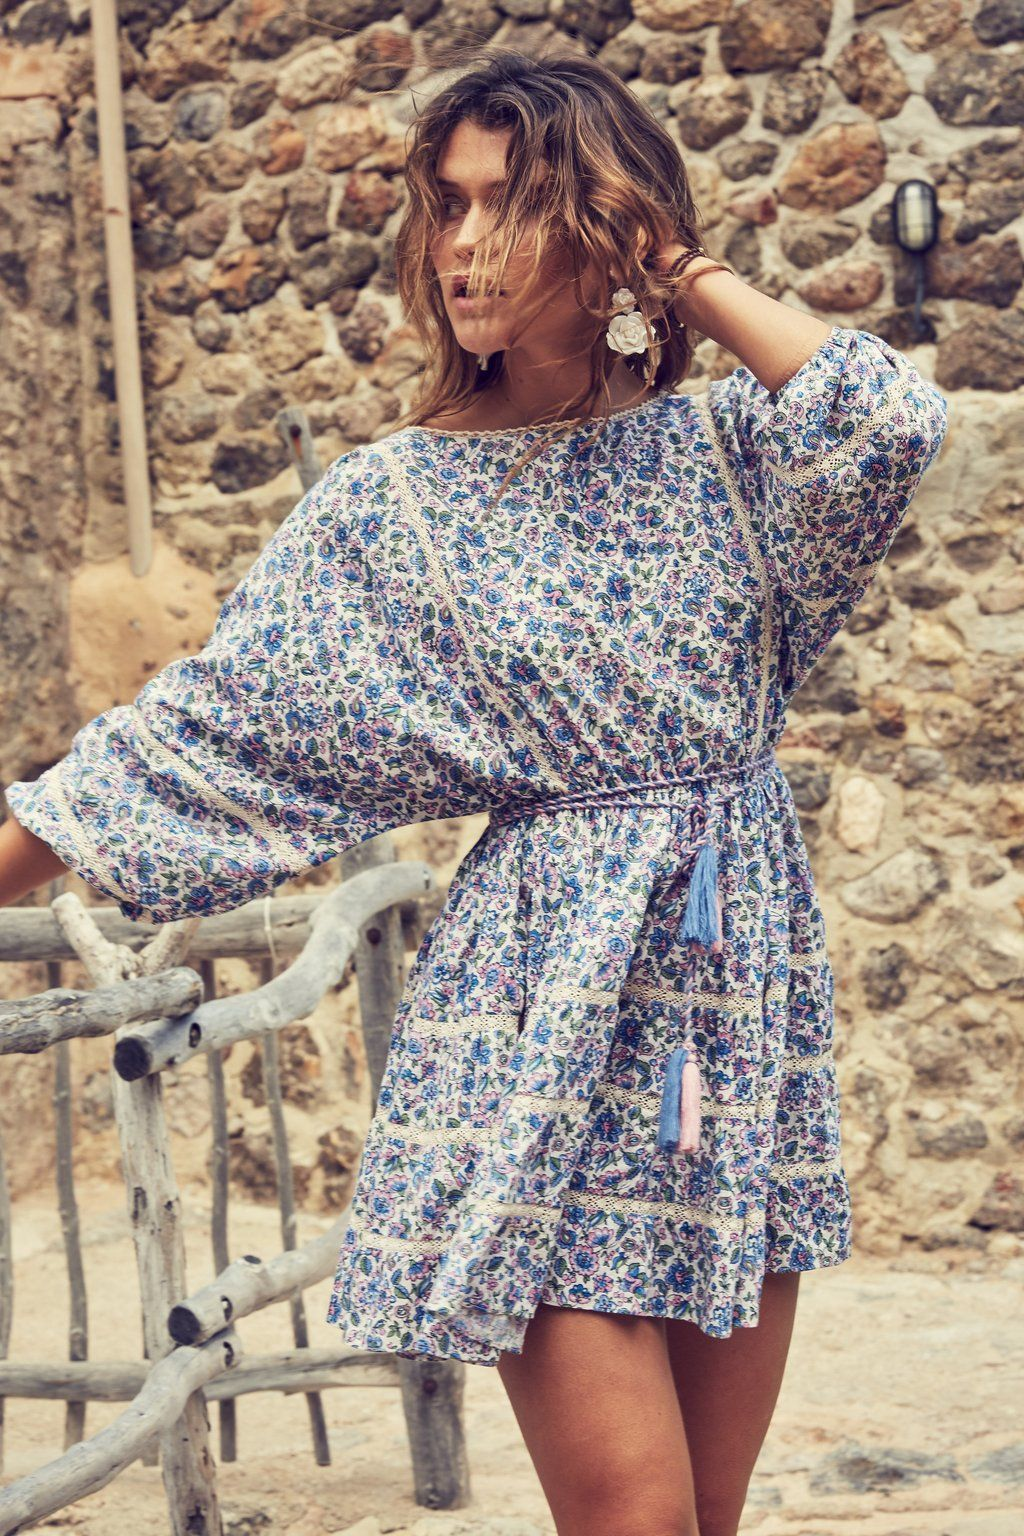 Dress And Dresses Outfits Pinterest Style Fashion File Noelle dpvPd